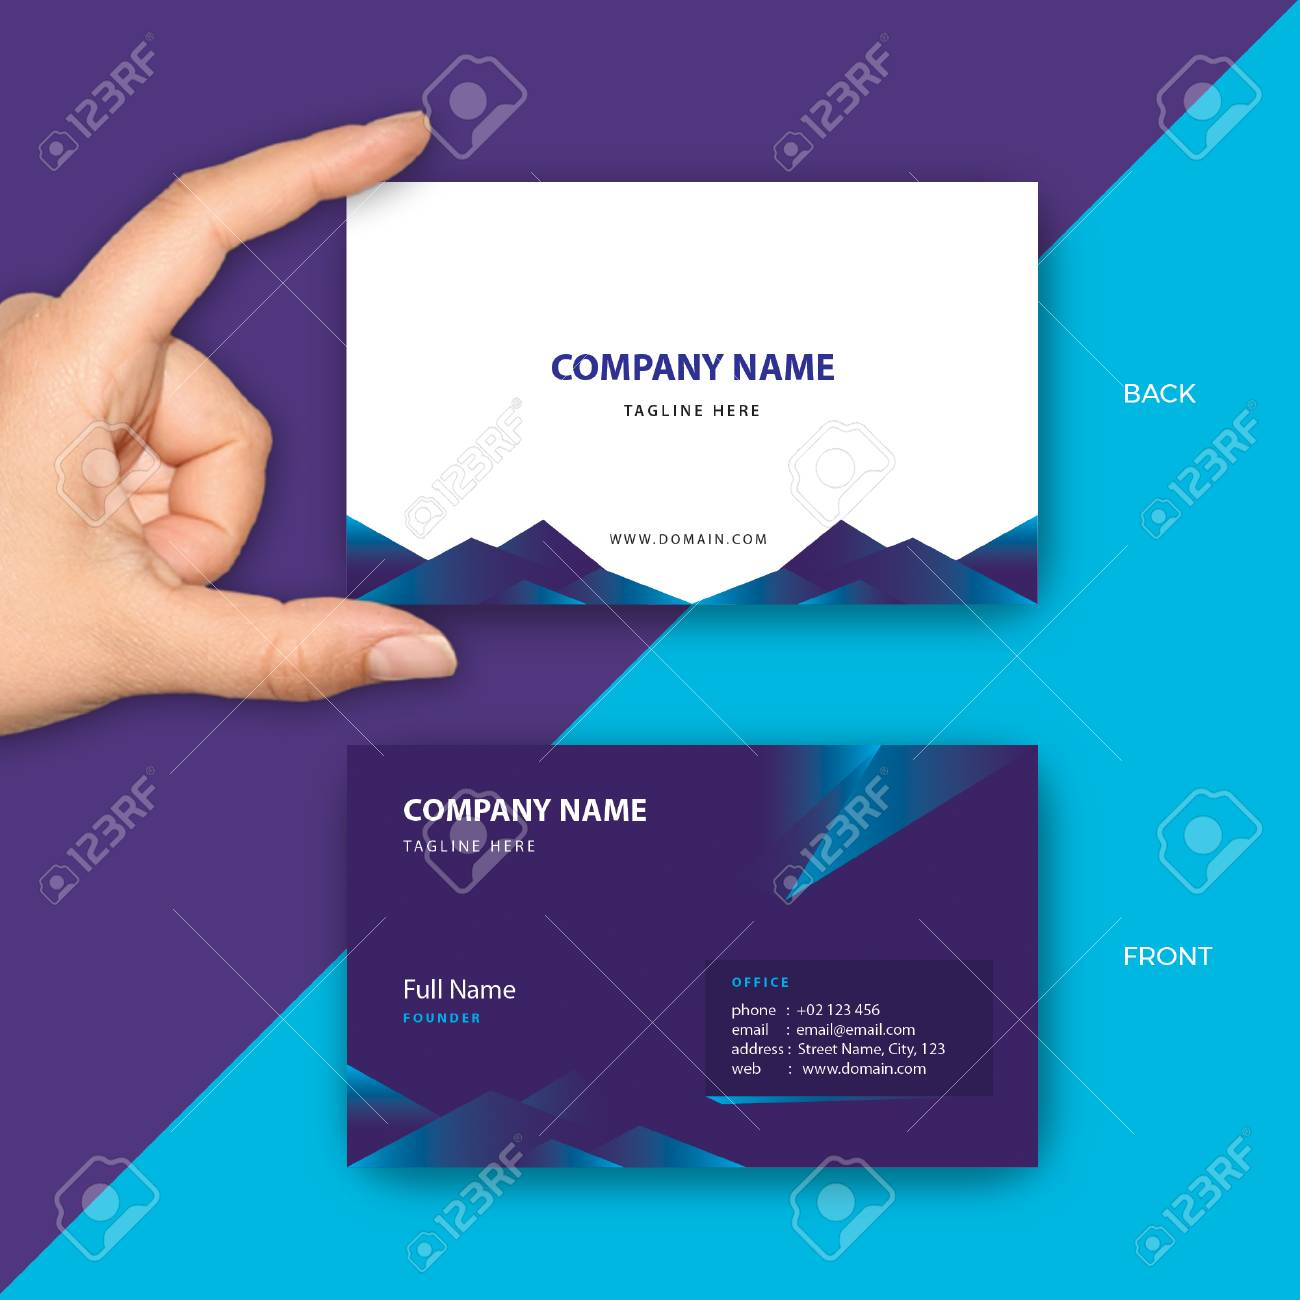 Luxury Purple Business Card Vector Template Fit For Modern Company ...